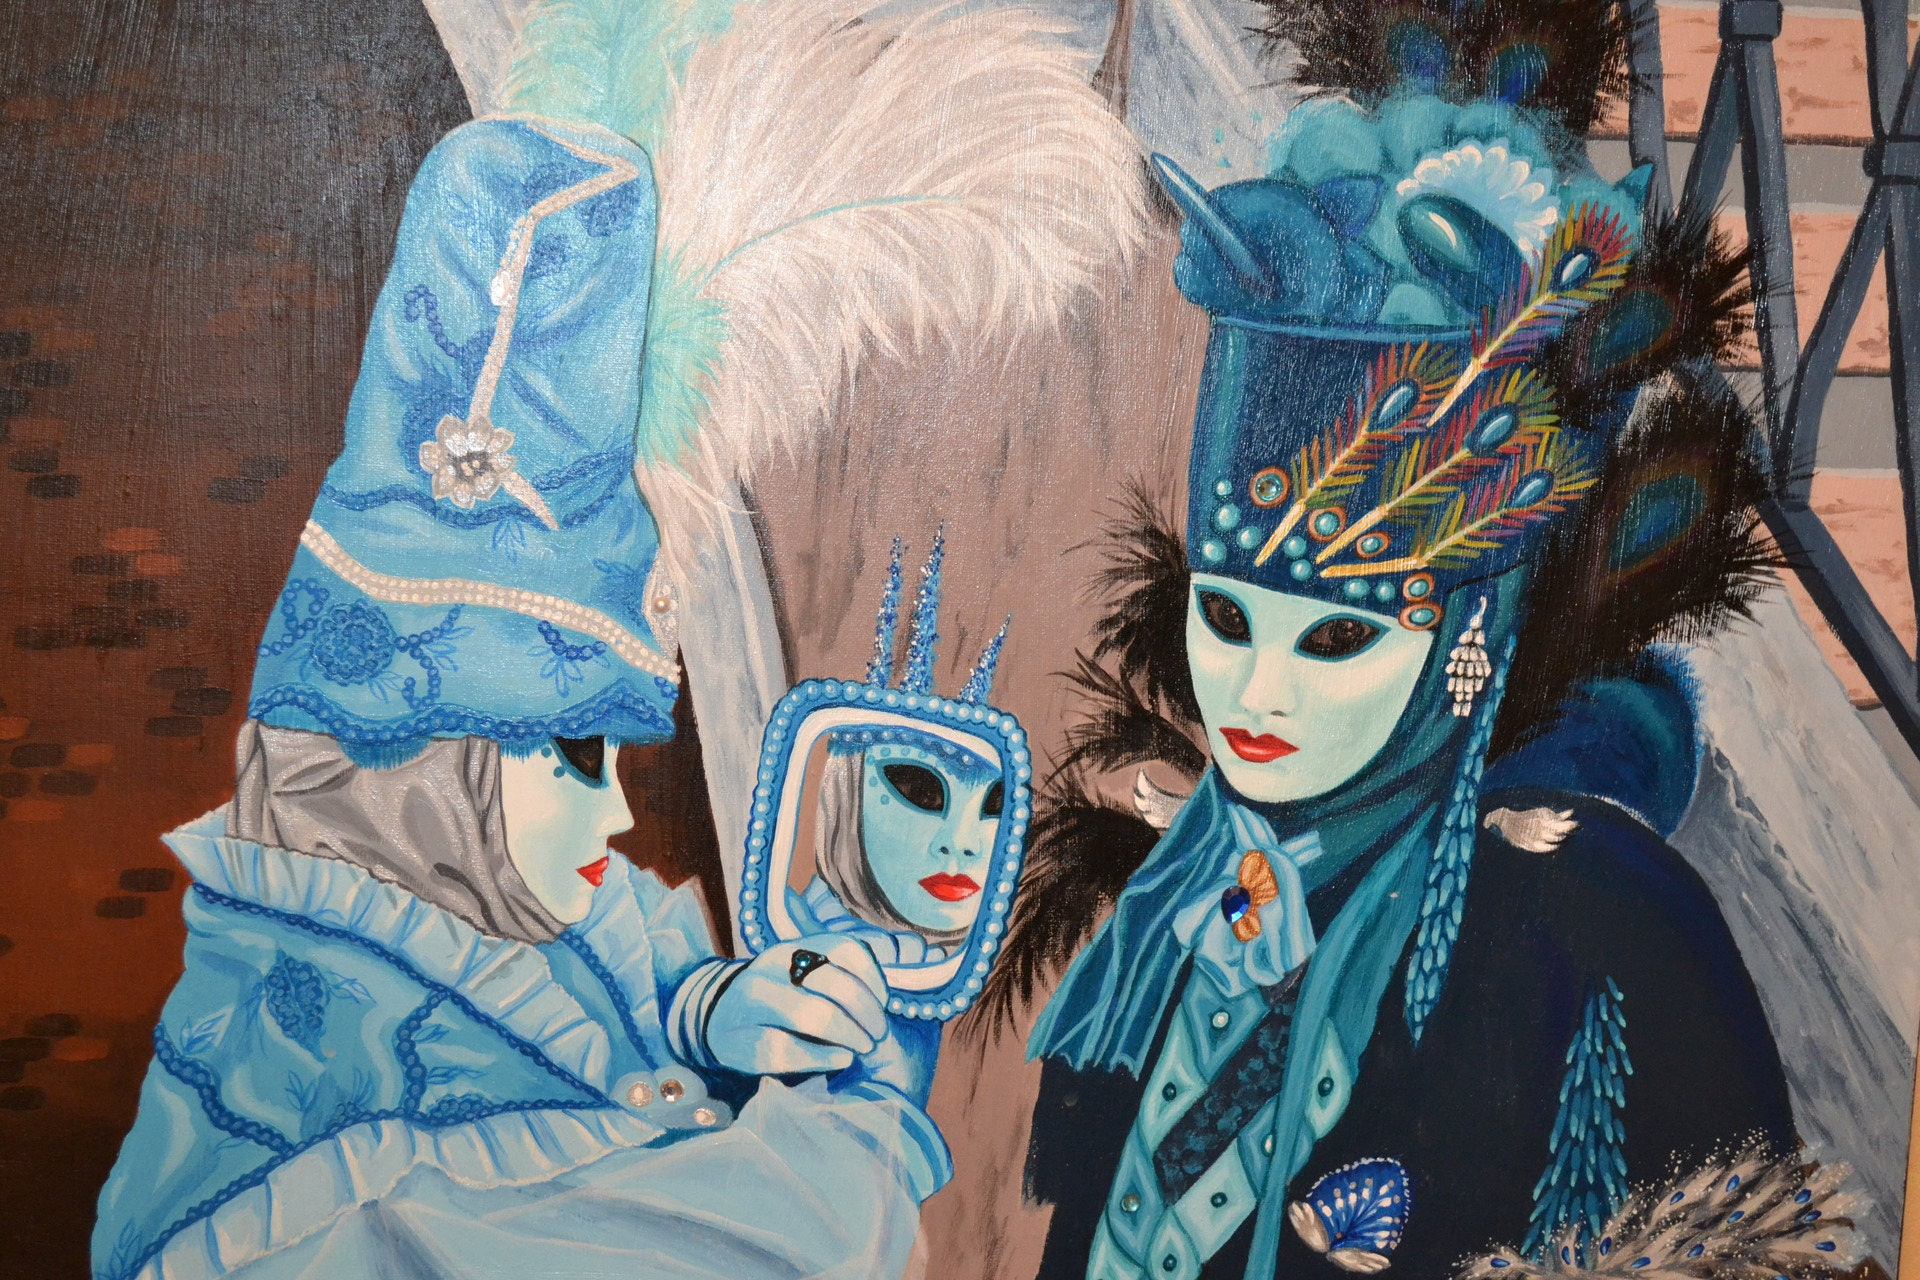 tableau acrylique carnaval de venise les 2 masques bleus. Black Bedroom Furniture Sets. Home Design Ideas